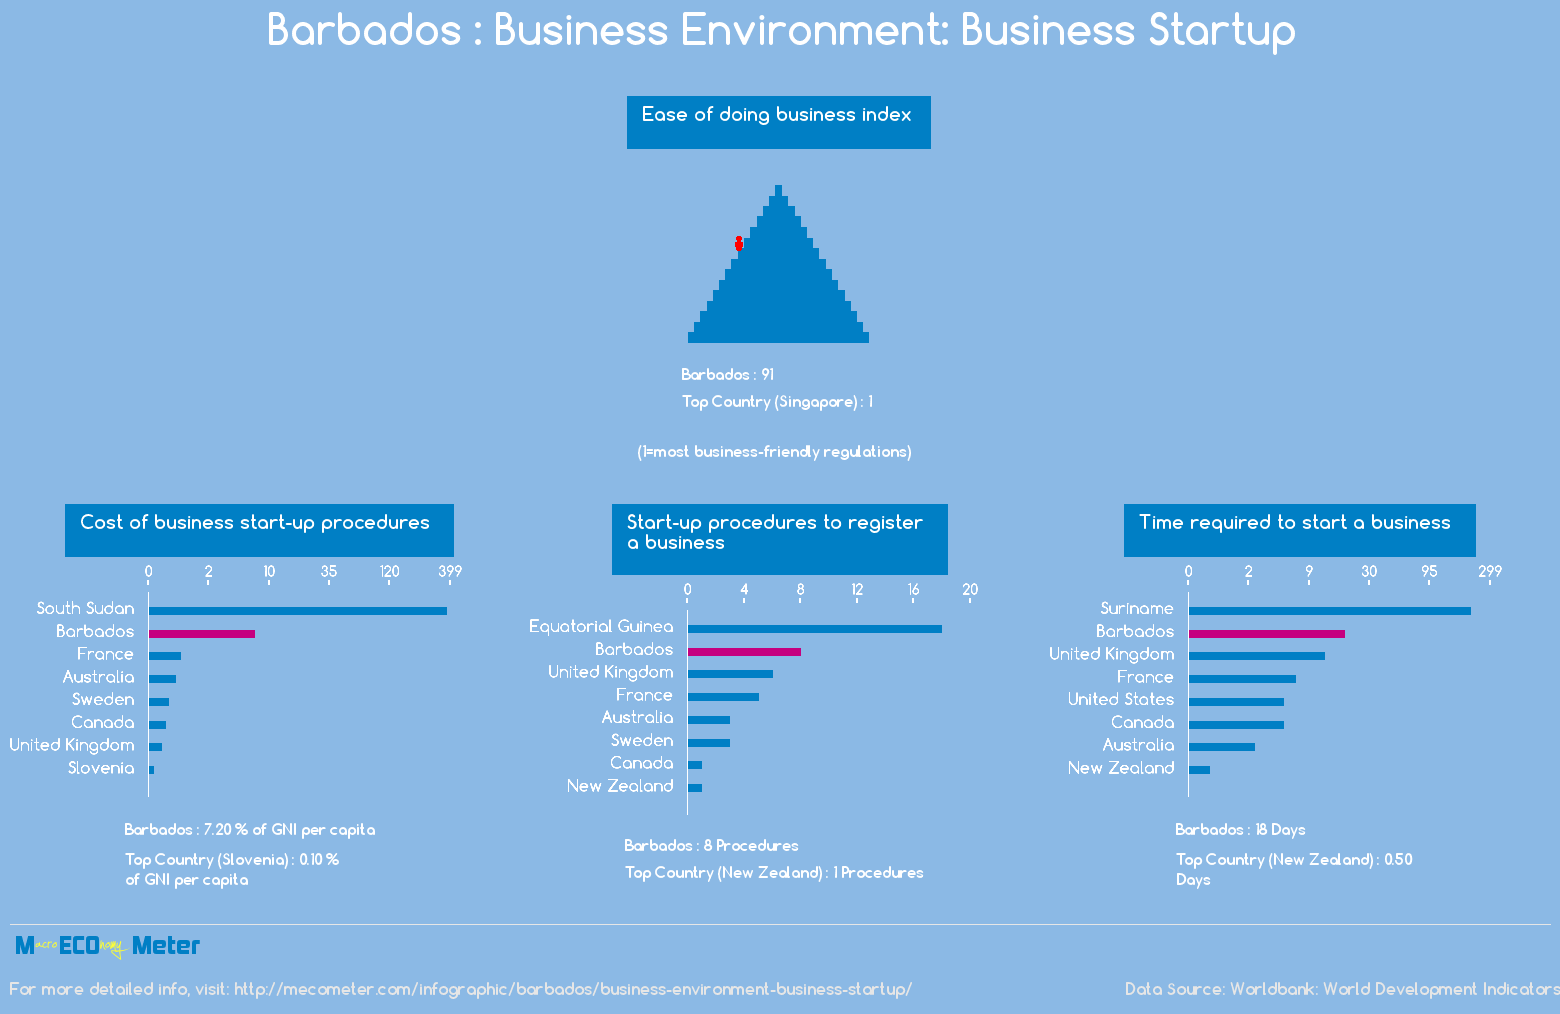 Barbados : Business Environment: Business Startup